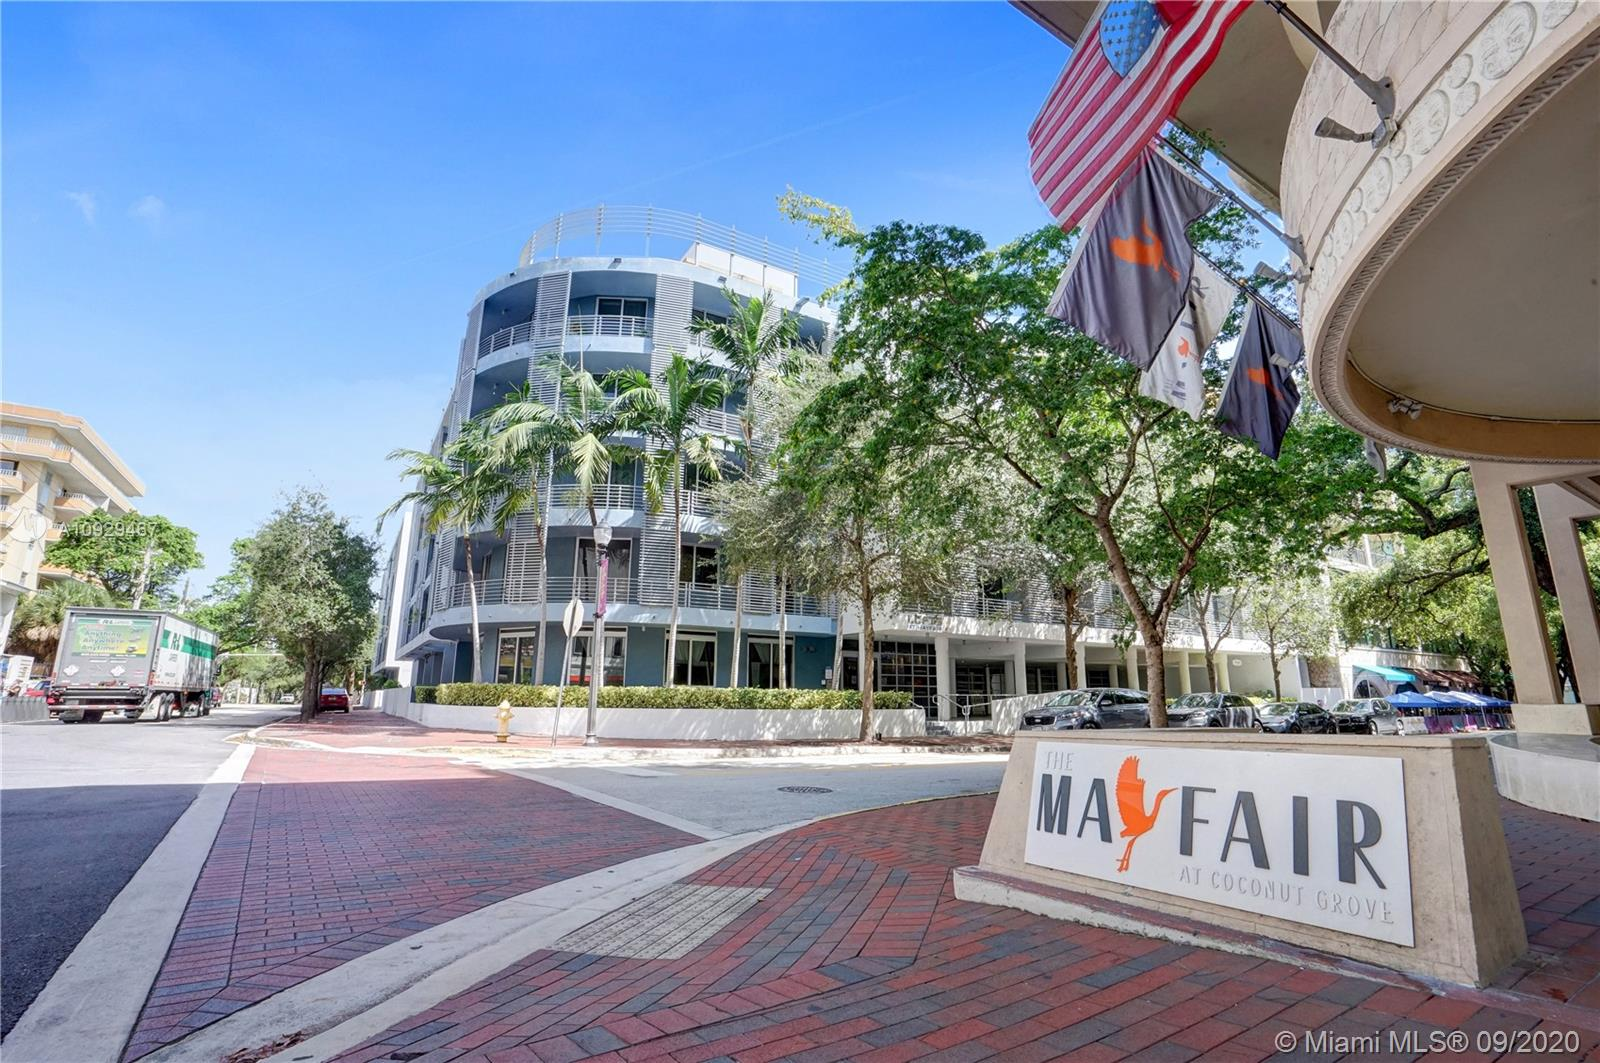 Highly motivated seller. This rare gem is ready for its new owner. Located in the very heart of Coconut Grove, just minutes south of Downtown and the Beaches, this quaint scenery and amiable atmosphere make this neighborhood one of Miami's premier lifestyle destinations. This quiet boutique building is right across the Mayfair Hotel and the redesigned and famous CocoWalk, a perfect combination of chef-driven restaurants, charming sidewalk cafes, chic boutiques & much more making this neighborhood a place brimming with scenic serenity and natural splendor. This spacious and bright apartment offers an open layout, incredible amount of closet space, extra large balcony, marble floors & over 1000SF, a unique opportunity to live in the best neighborhood of Miami at the  most competitive price.